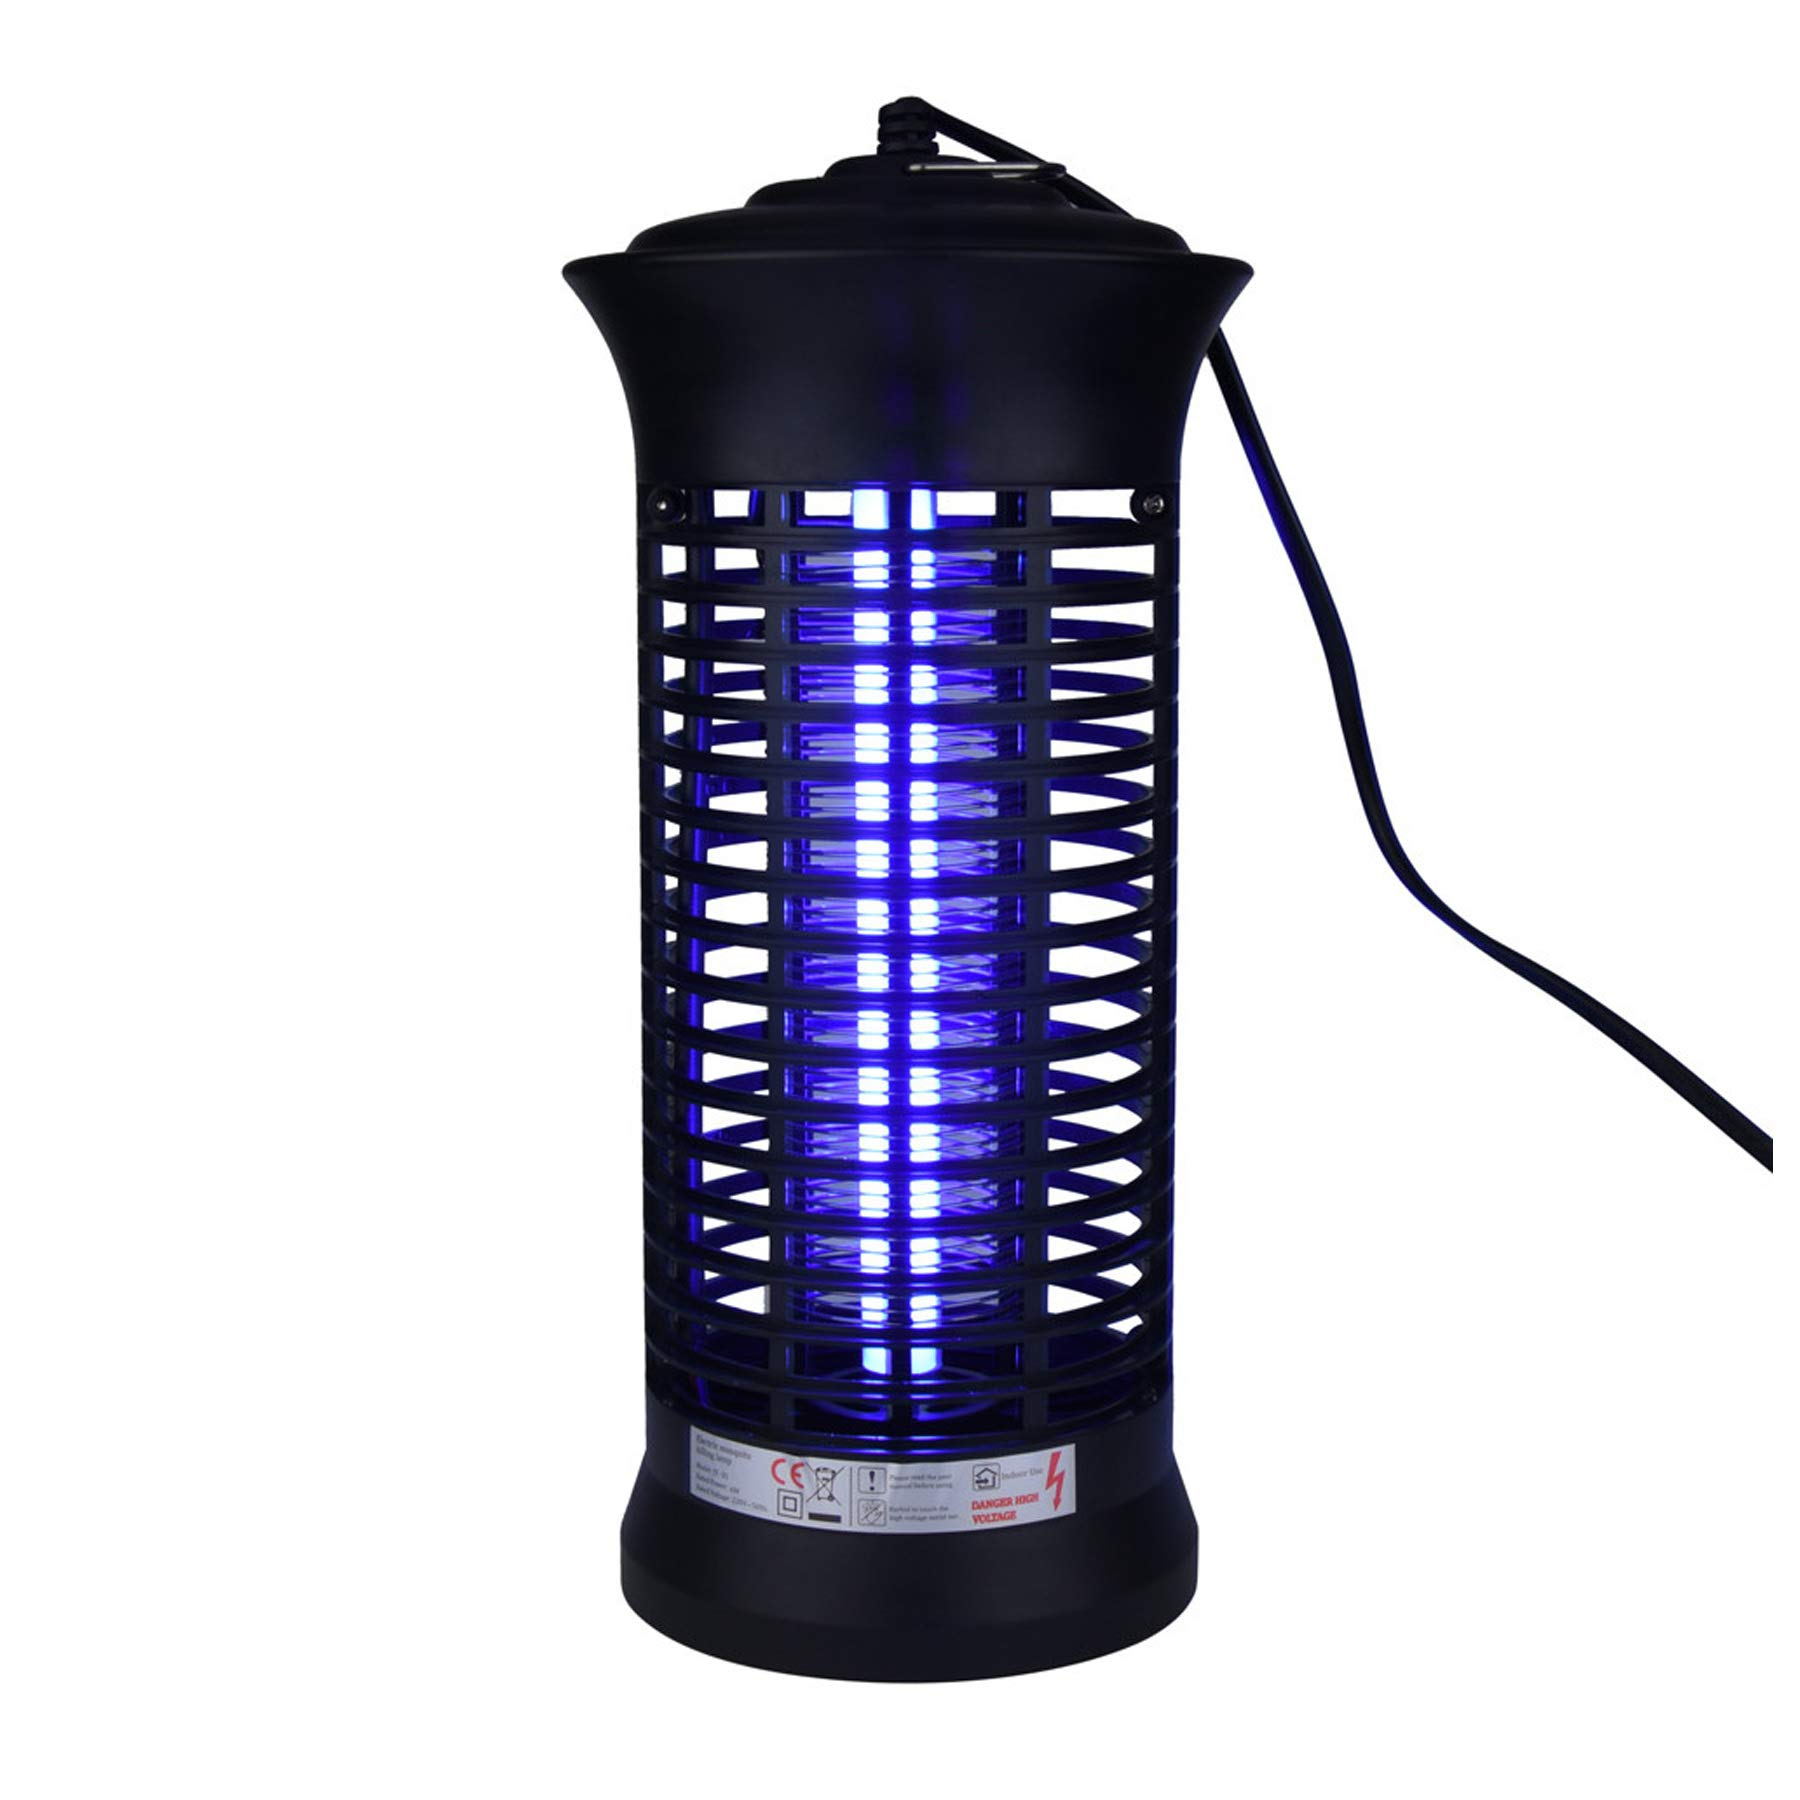 Naiflowers Electronic Mosquito Bug Zapper LED, Socket Electric Lamp LED Indoor Smart Mosquito Insect Light Killer Fly Trap Bug Lamp, Repellent Fly Zapper Non-Toxic No Radiation Pest Control